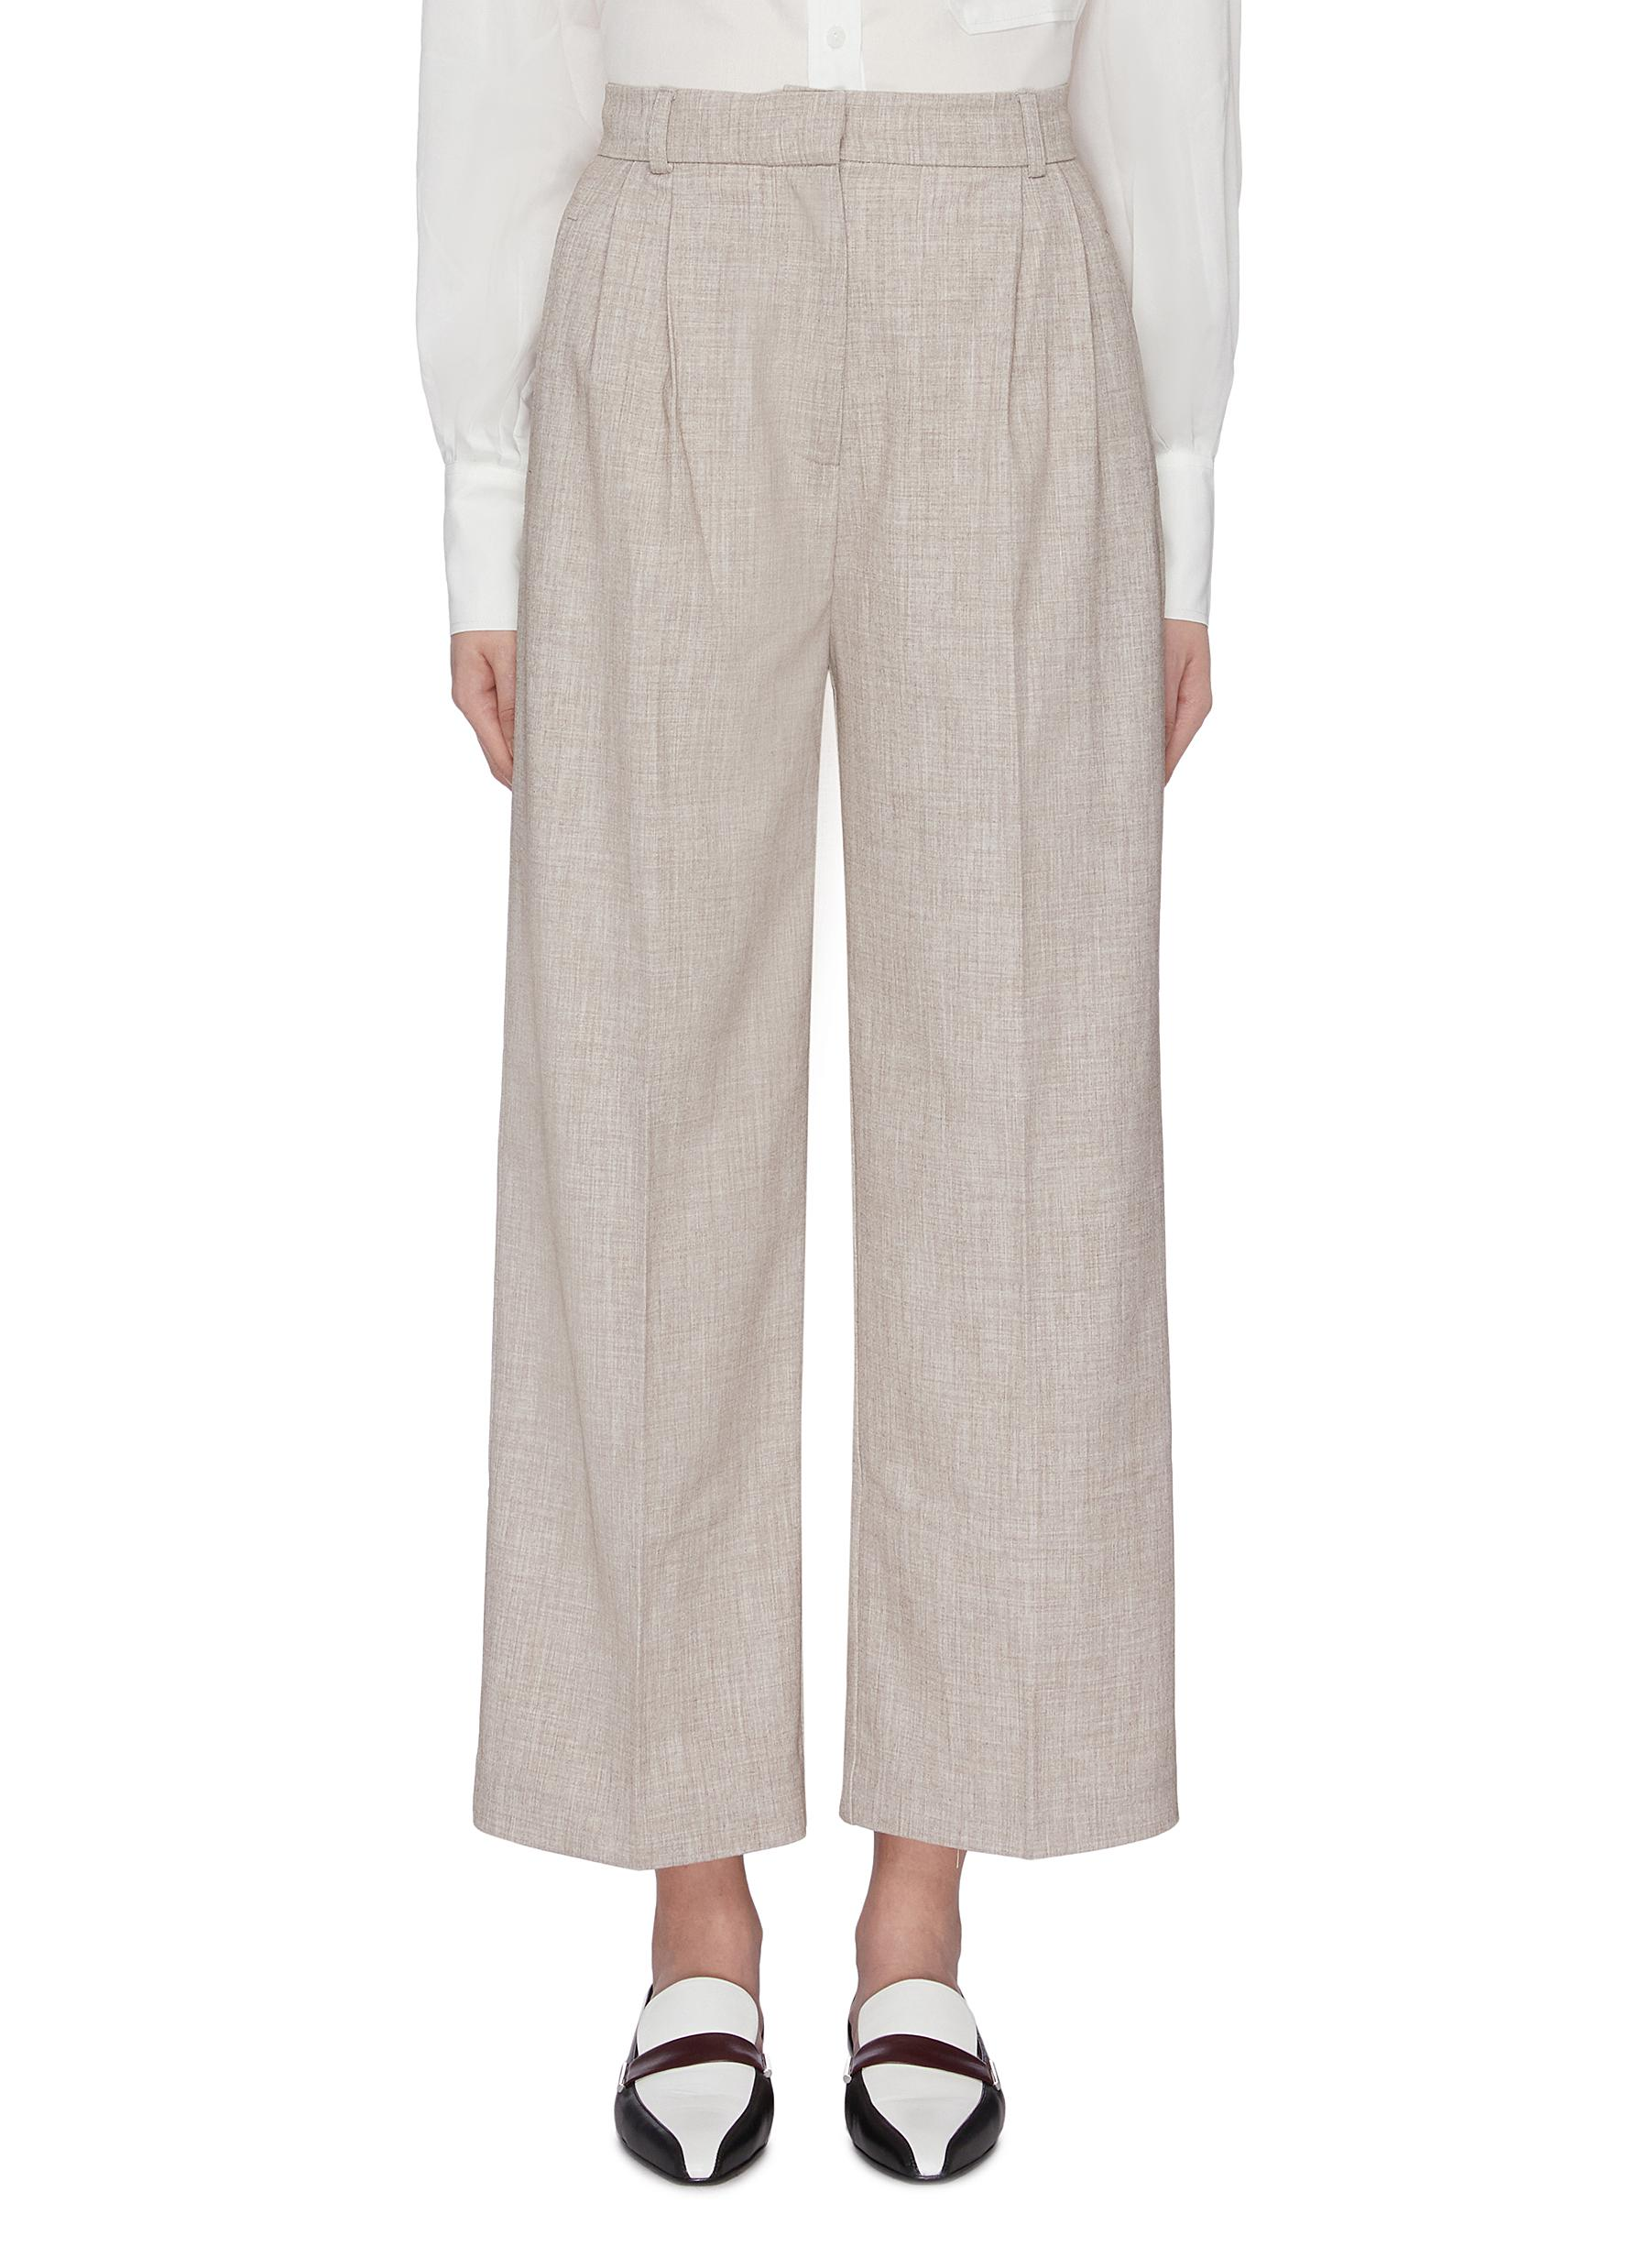 Wide leg suiting pants by Mijeong Park